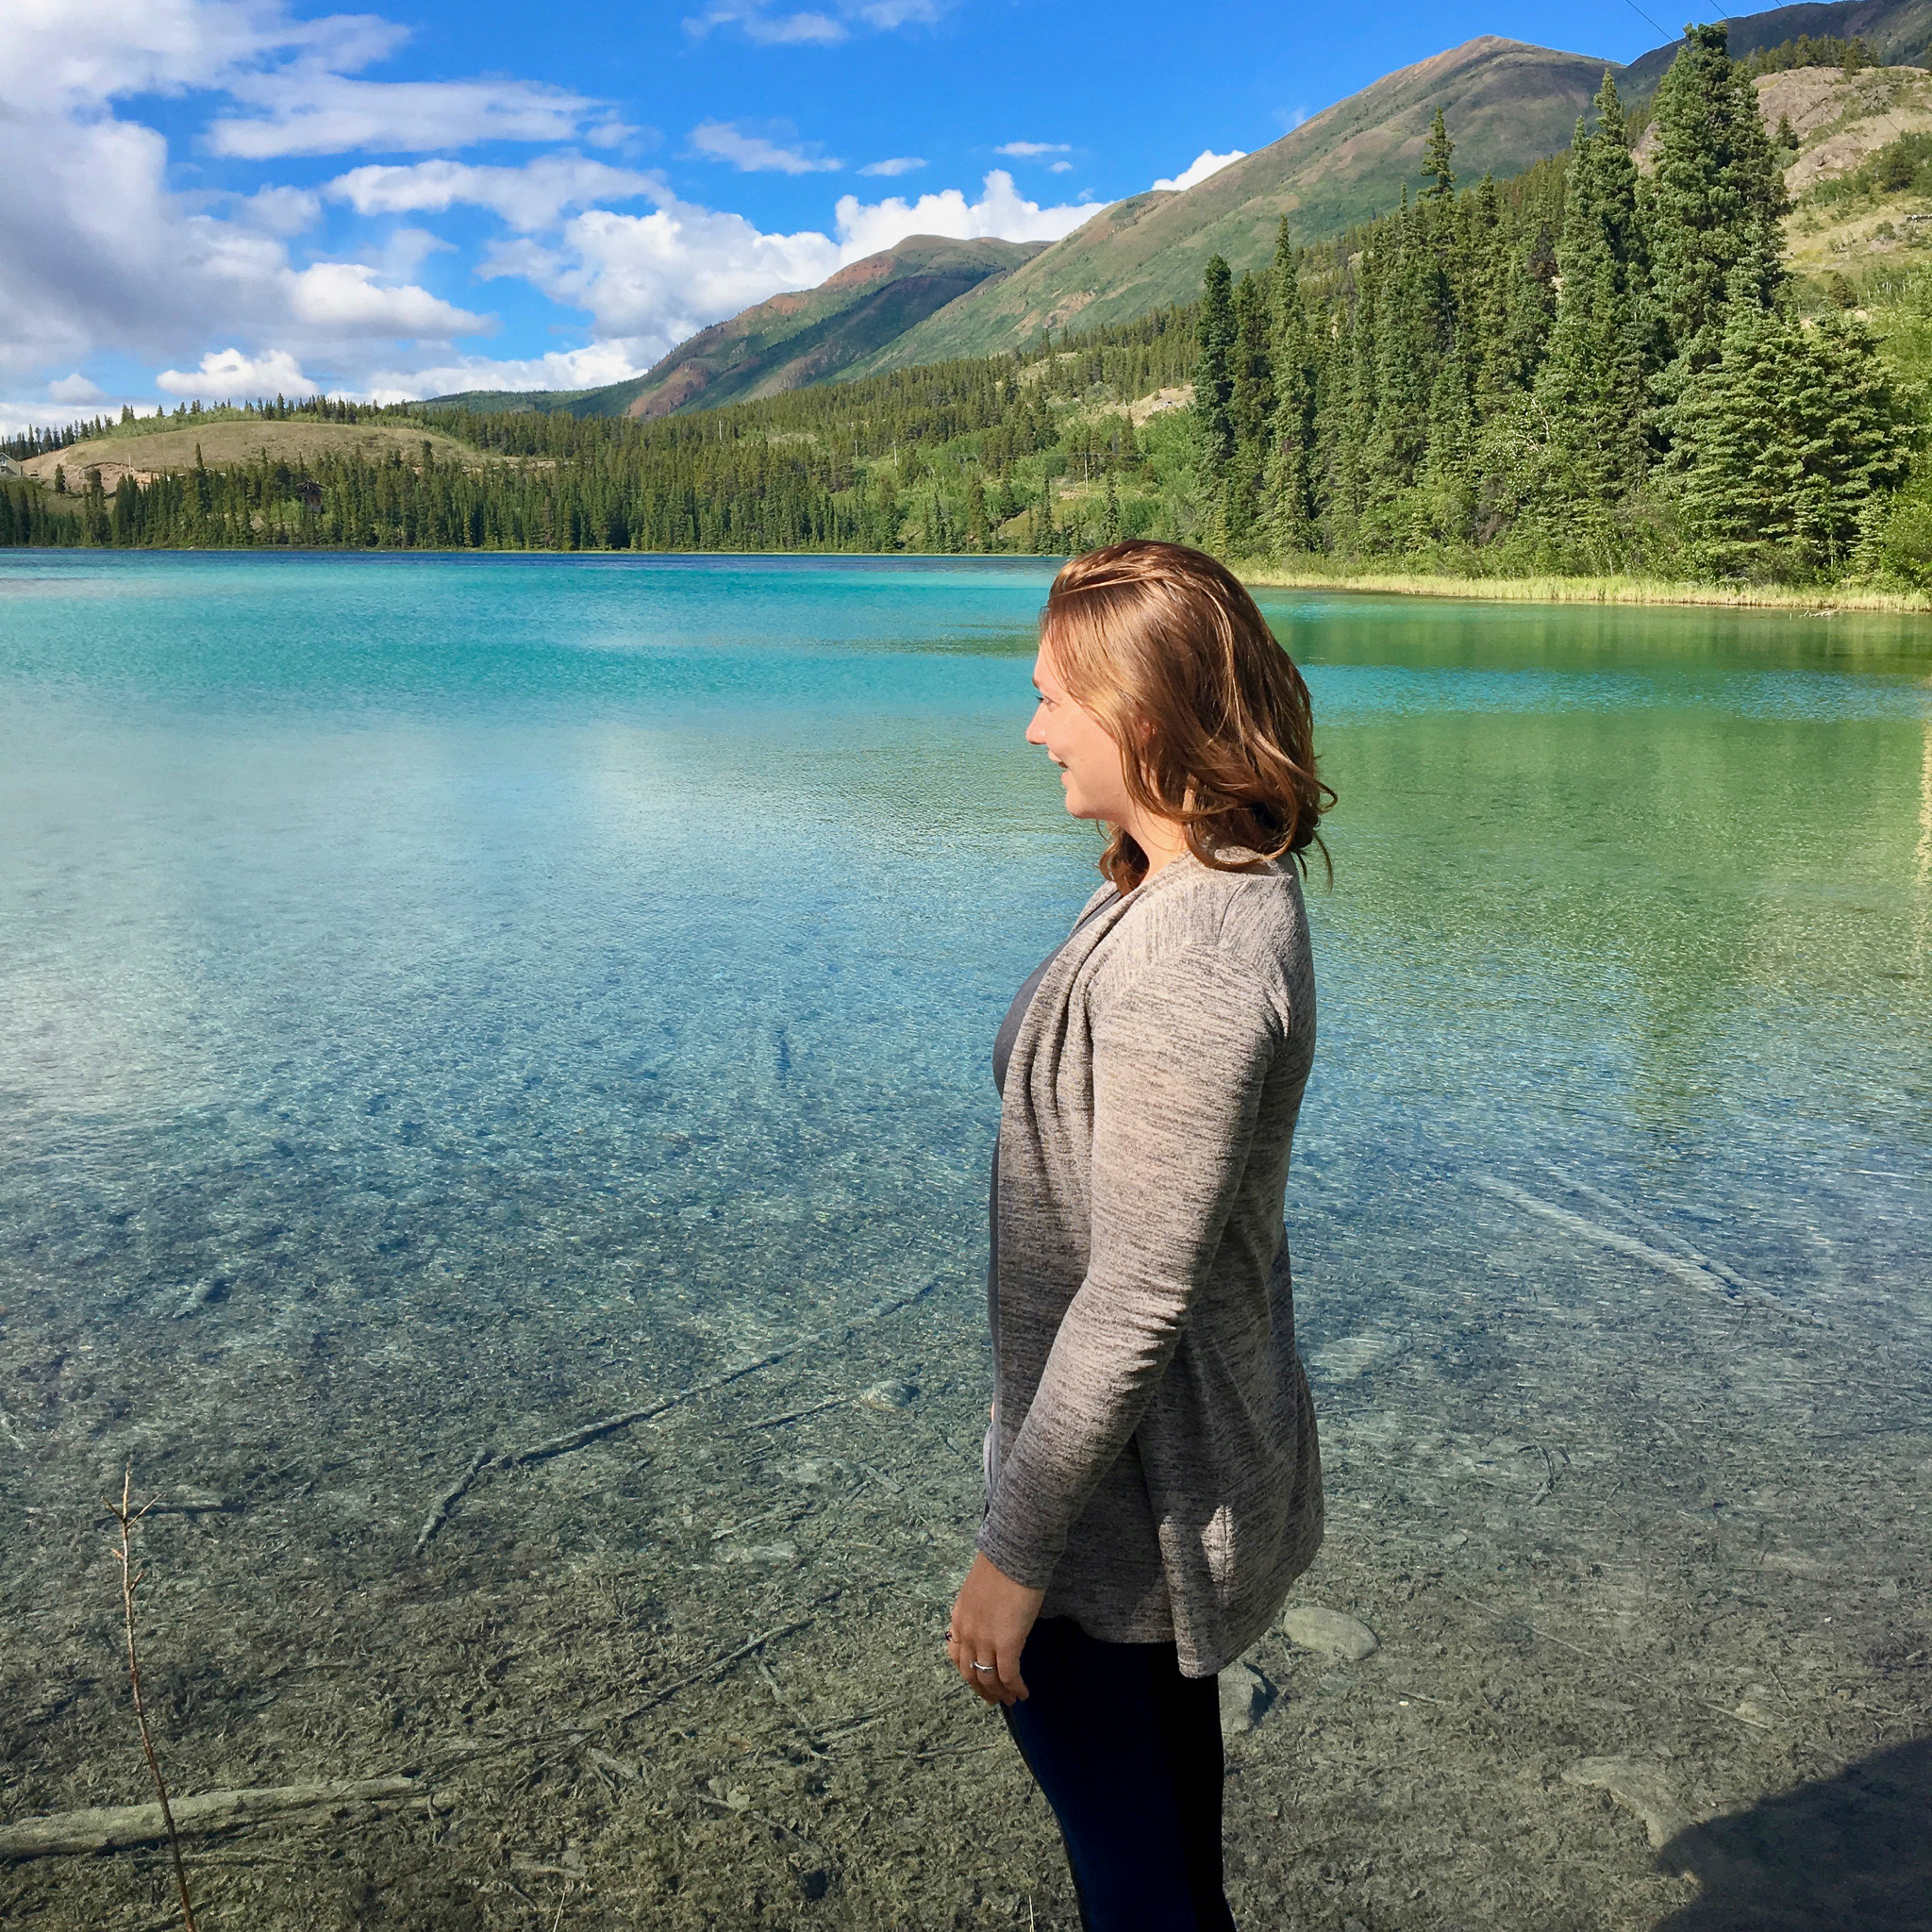 Woman looking out at emerald colored lake, surrounded by mountains and blue sky